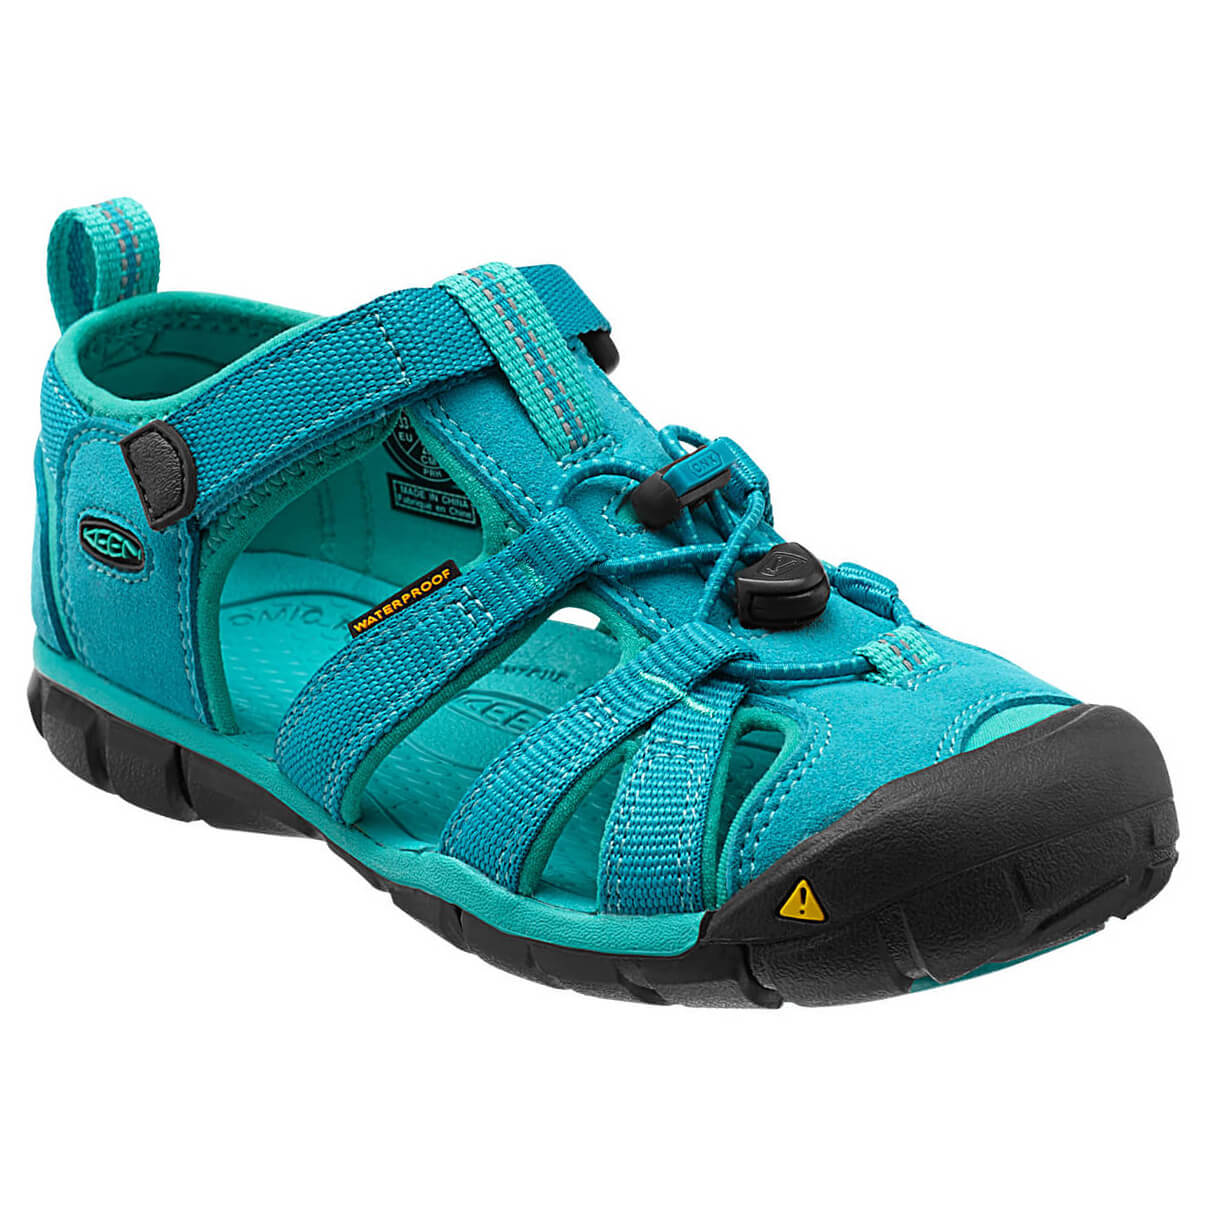 Discount Keen Shoes, Boots, and Sandals on Sale up to 55% off! Shop lasourisglobe-trotteuse.tk's large selection of 70+ Discount Keen Shoes. FREE Shipping & Exchanges, and a % price guarantee.